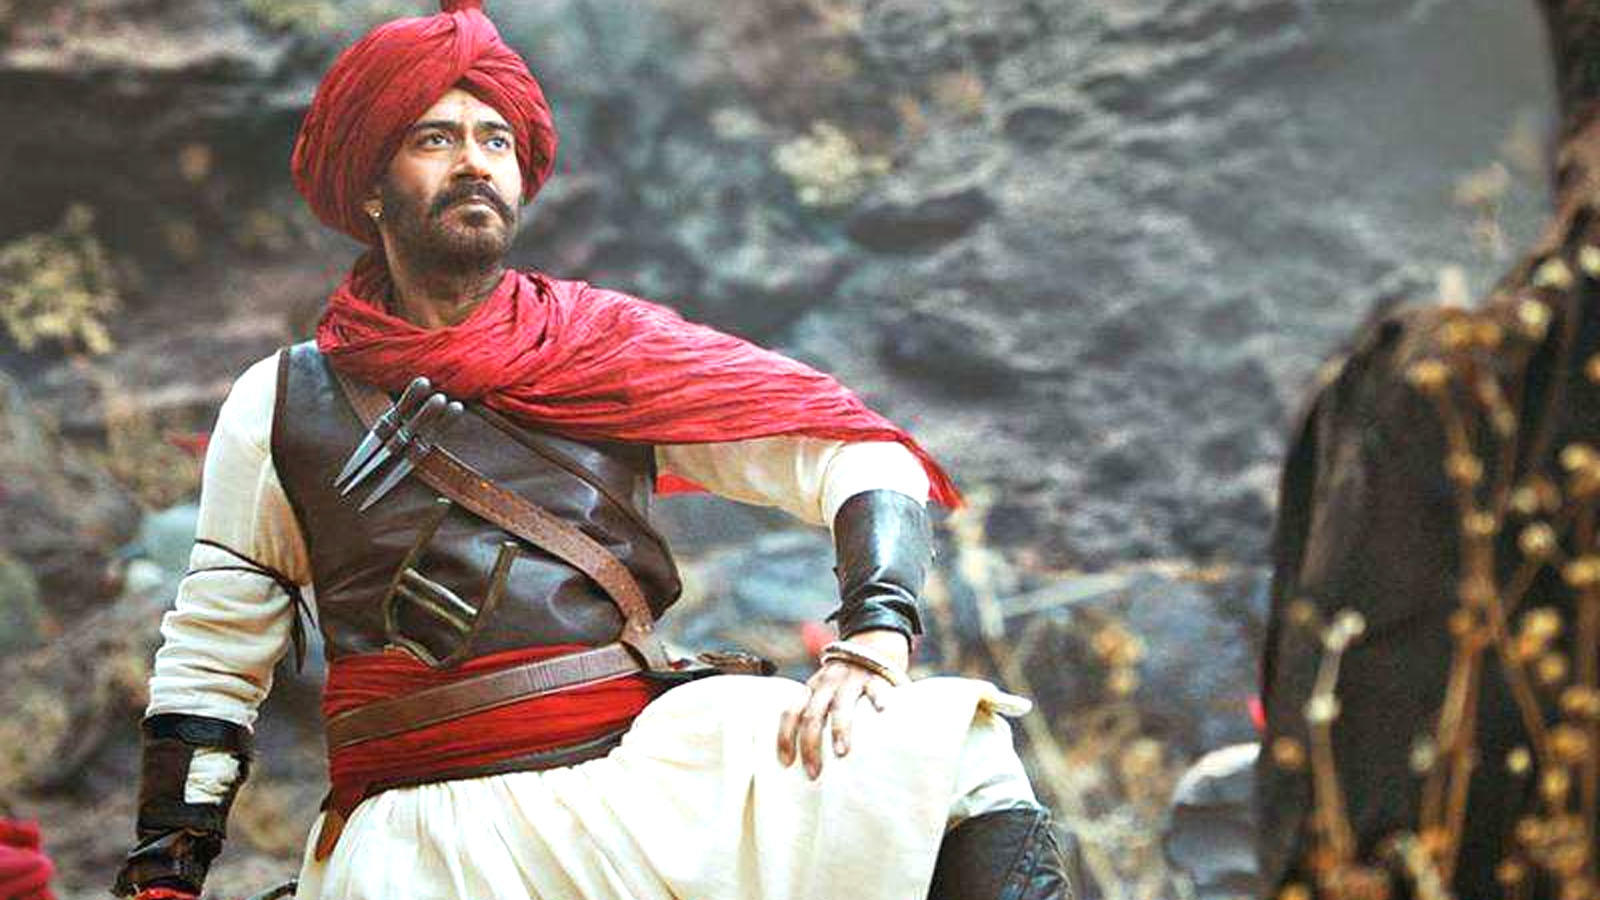 after-up-and-haryana-ajay-devgn-starrer-tanhaji-the-unsung-warrior-declared-tax-free-in-maharashtra-too